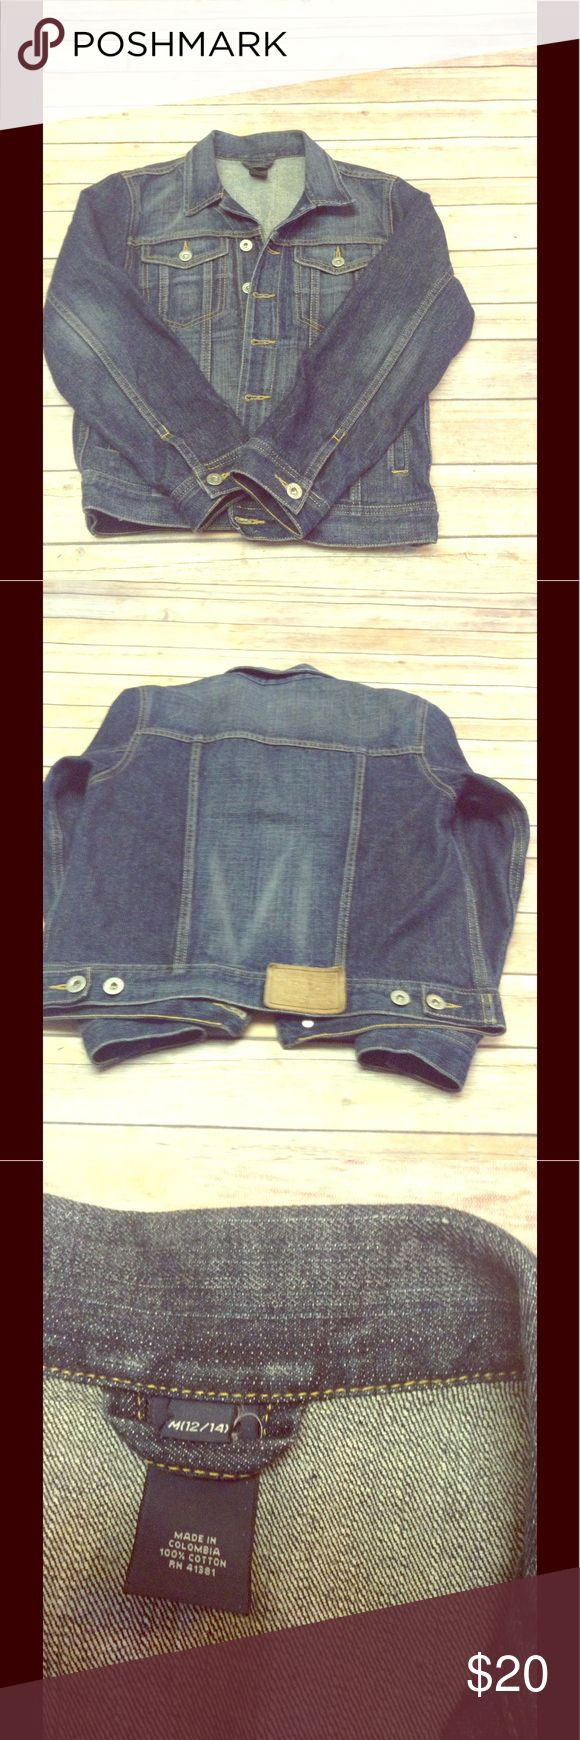 Ralph Lauren POLO denim jacket Beautiful POLO jacket in excellent pre-loved condition. This is a child's jacket, size 12-14. It is the same as a woman's XS-S. Ralph Lauren POLO Jackets & Coats Jean Jackets